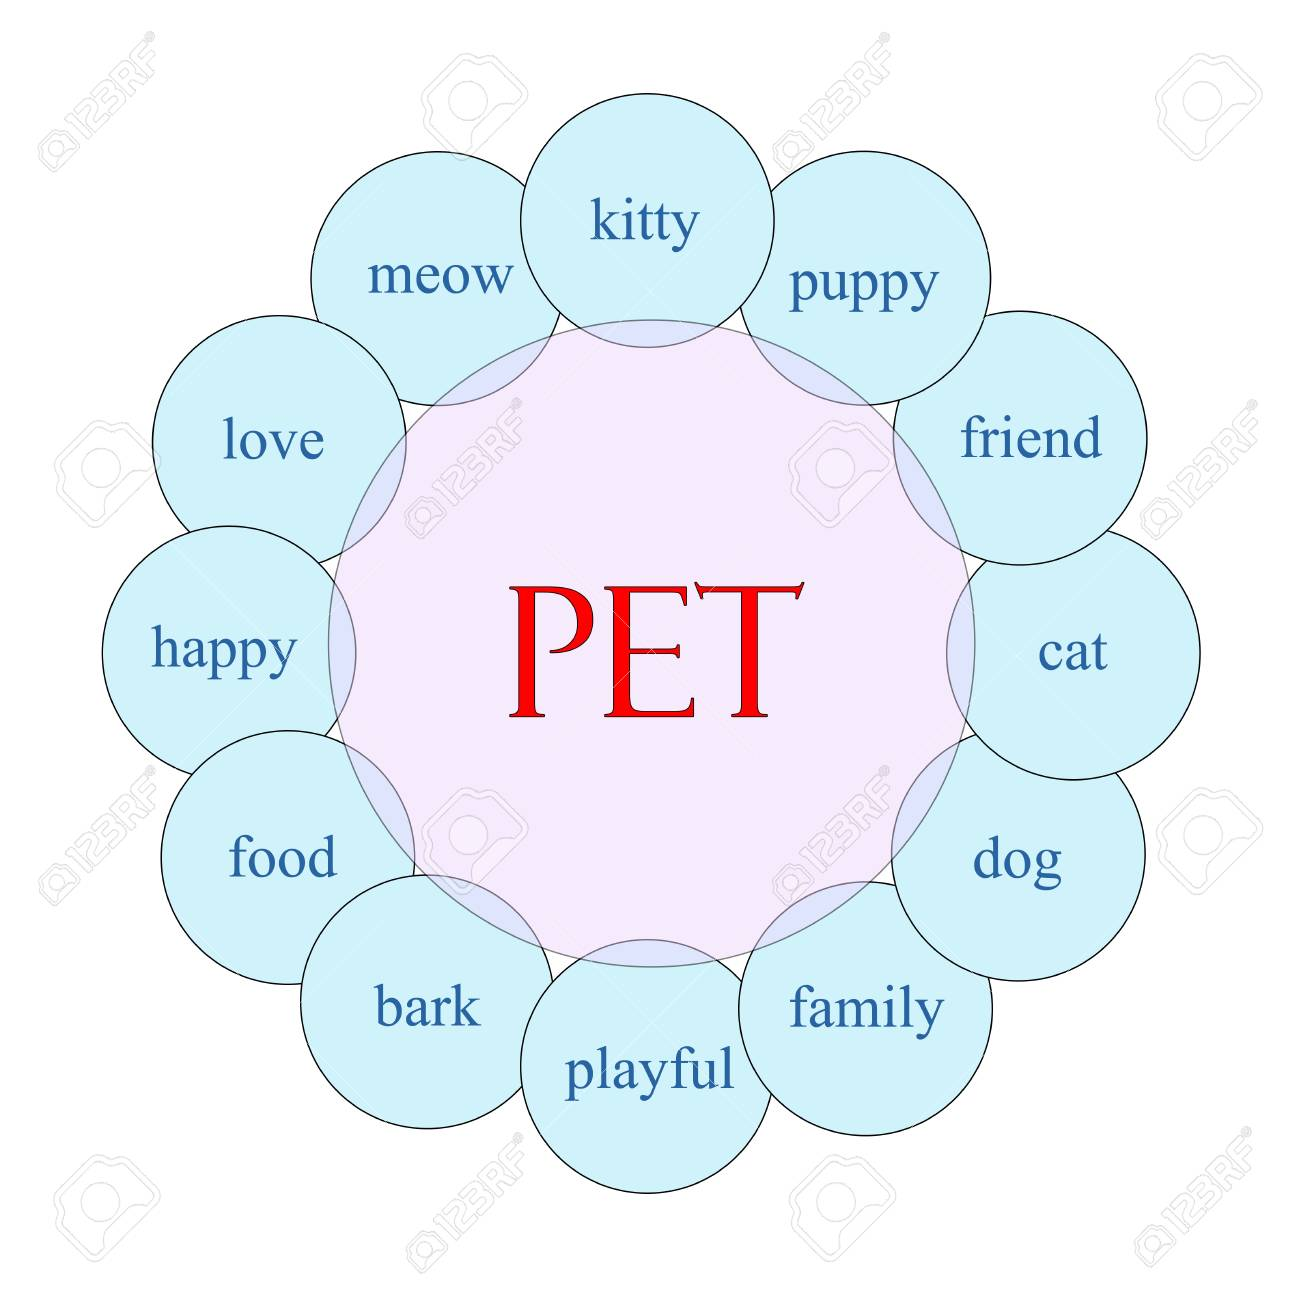 hight resolution of pet concept circular diagram in pink and blue with great terms such as kitty puppy